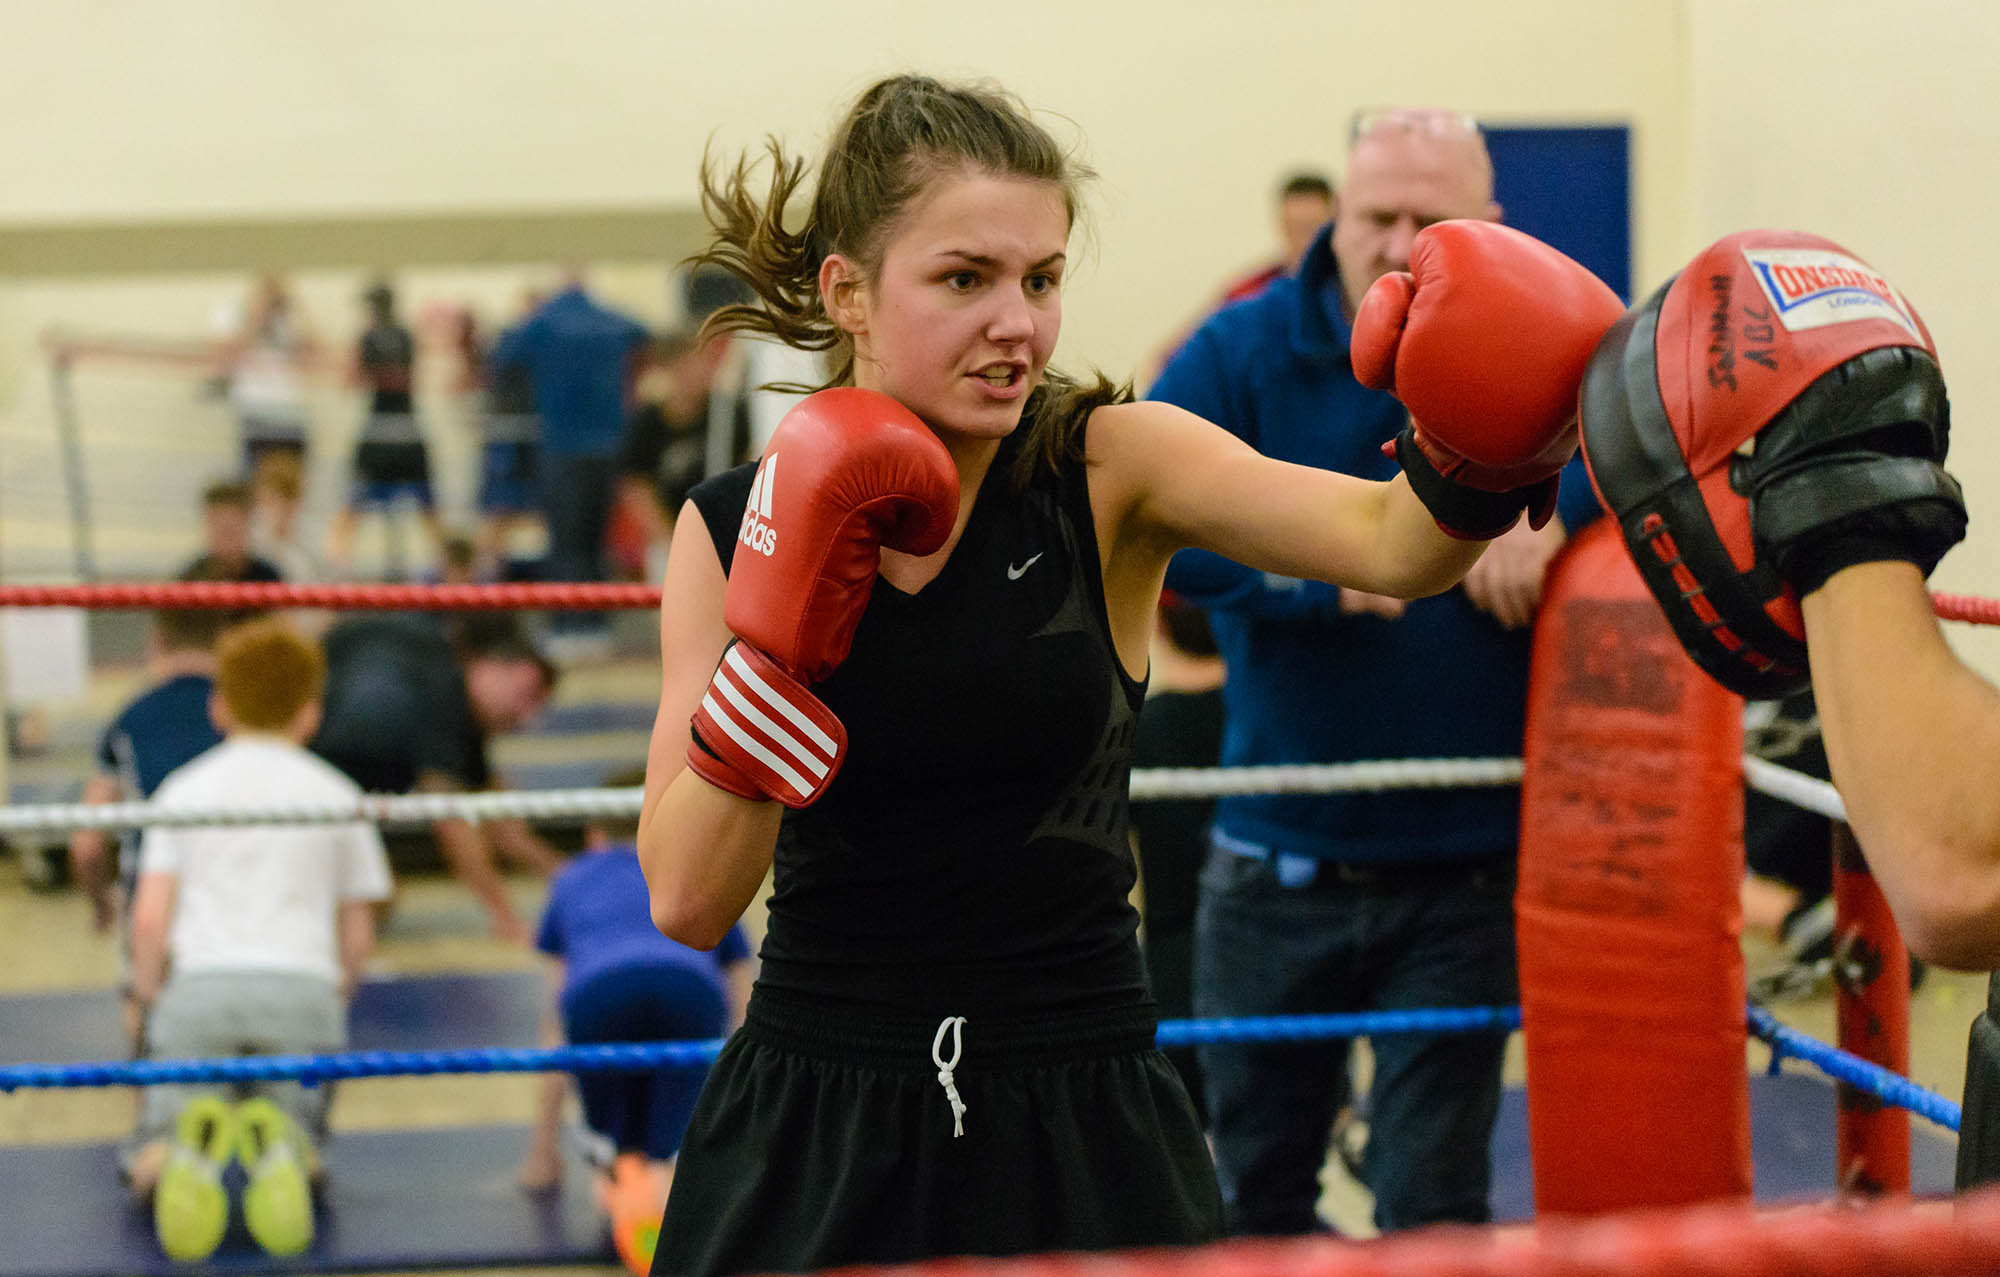 Young woman sparring in boxing ring